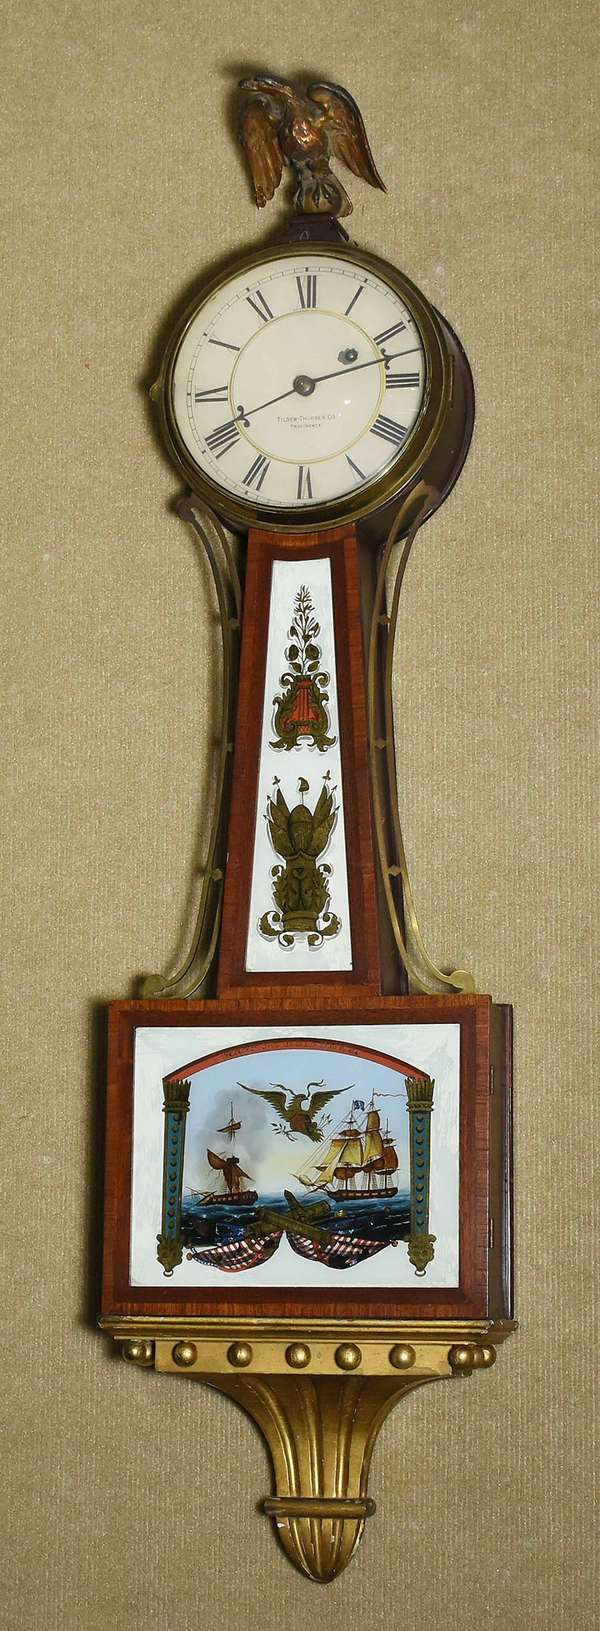 "ANTIQUE TILDEN & THURBER PROVIDENCE R.I. BANJO CLOCK. Reverse painted eglomise tablets, naval door tablet inscribed ""Wasp & Reindeer"", weight driven, 40"" H X 10 1/2"" W. Condition: original naval painted tablet has some flaking (see images) both case sides with scratches, some gilt loss on simulated bracket."